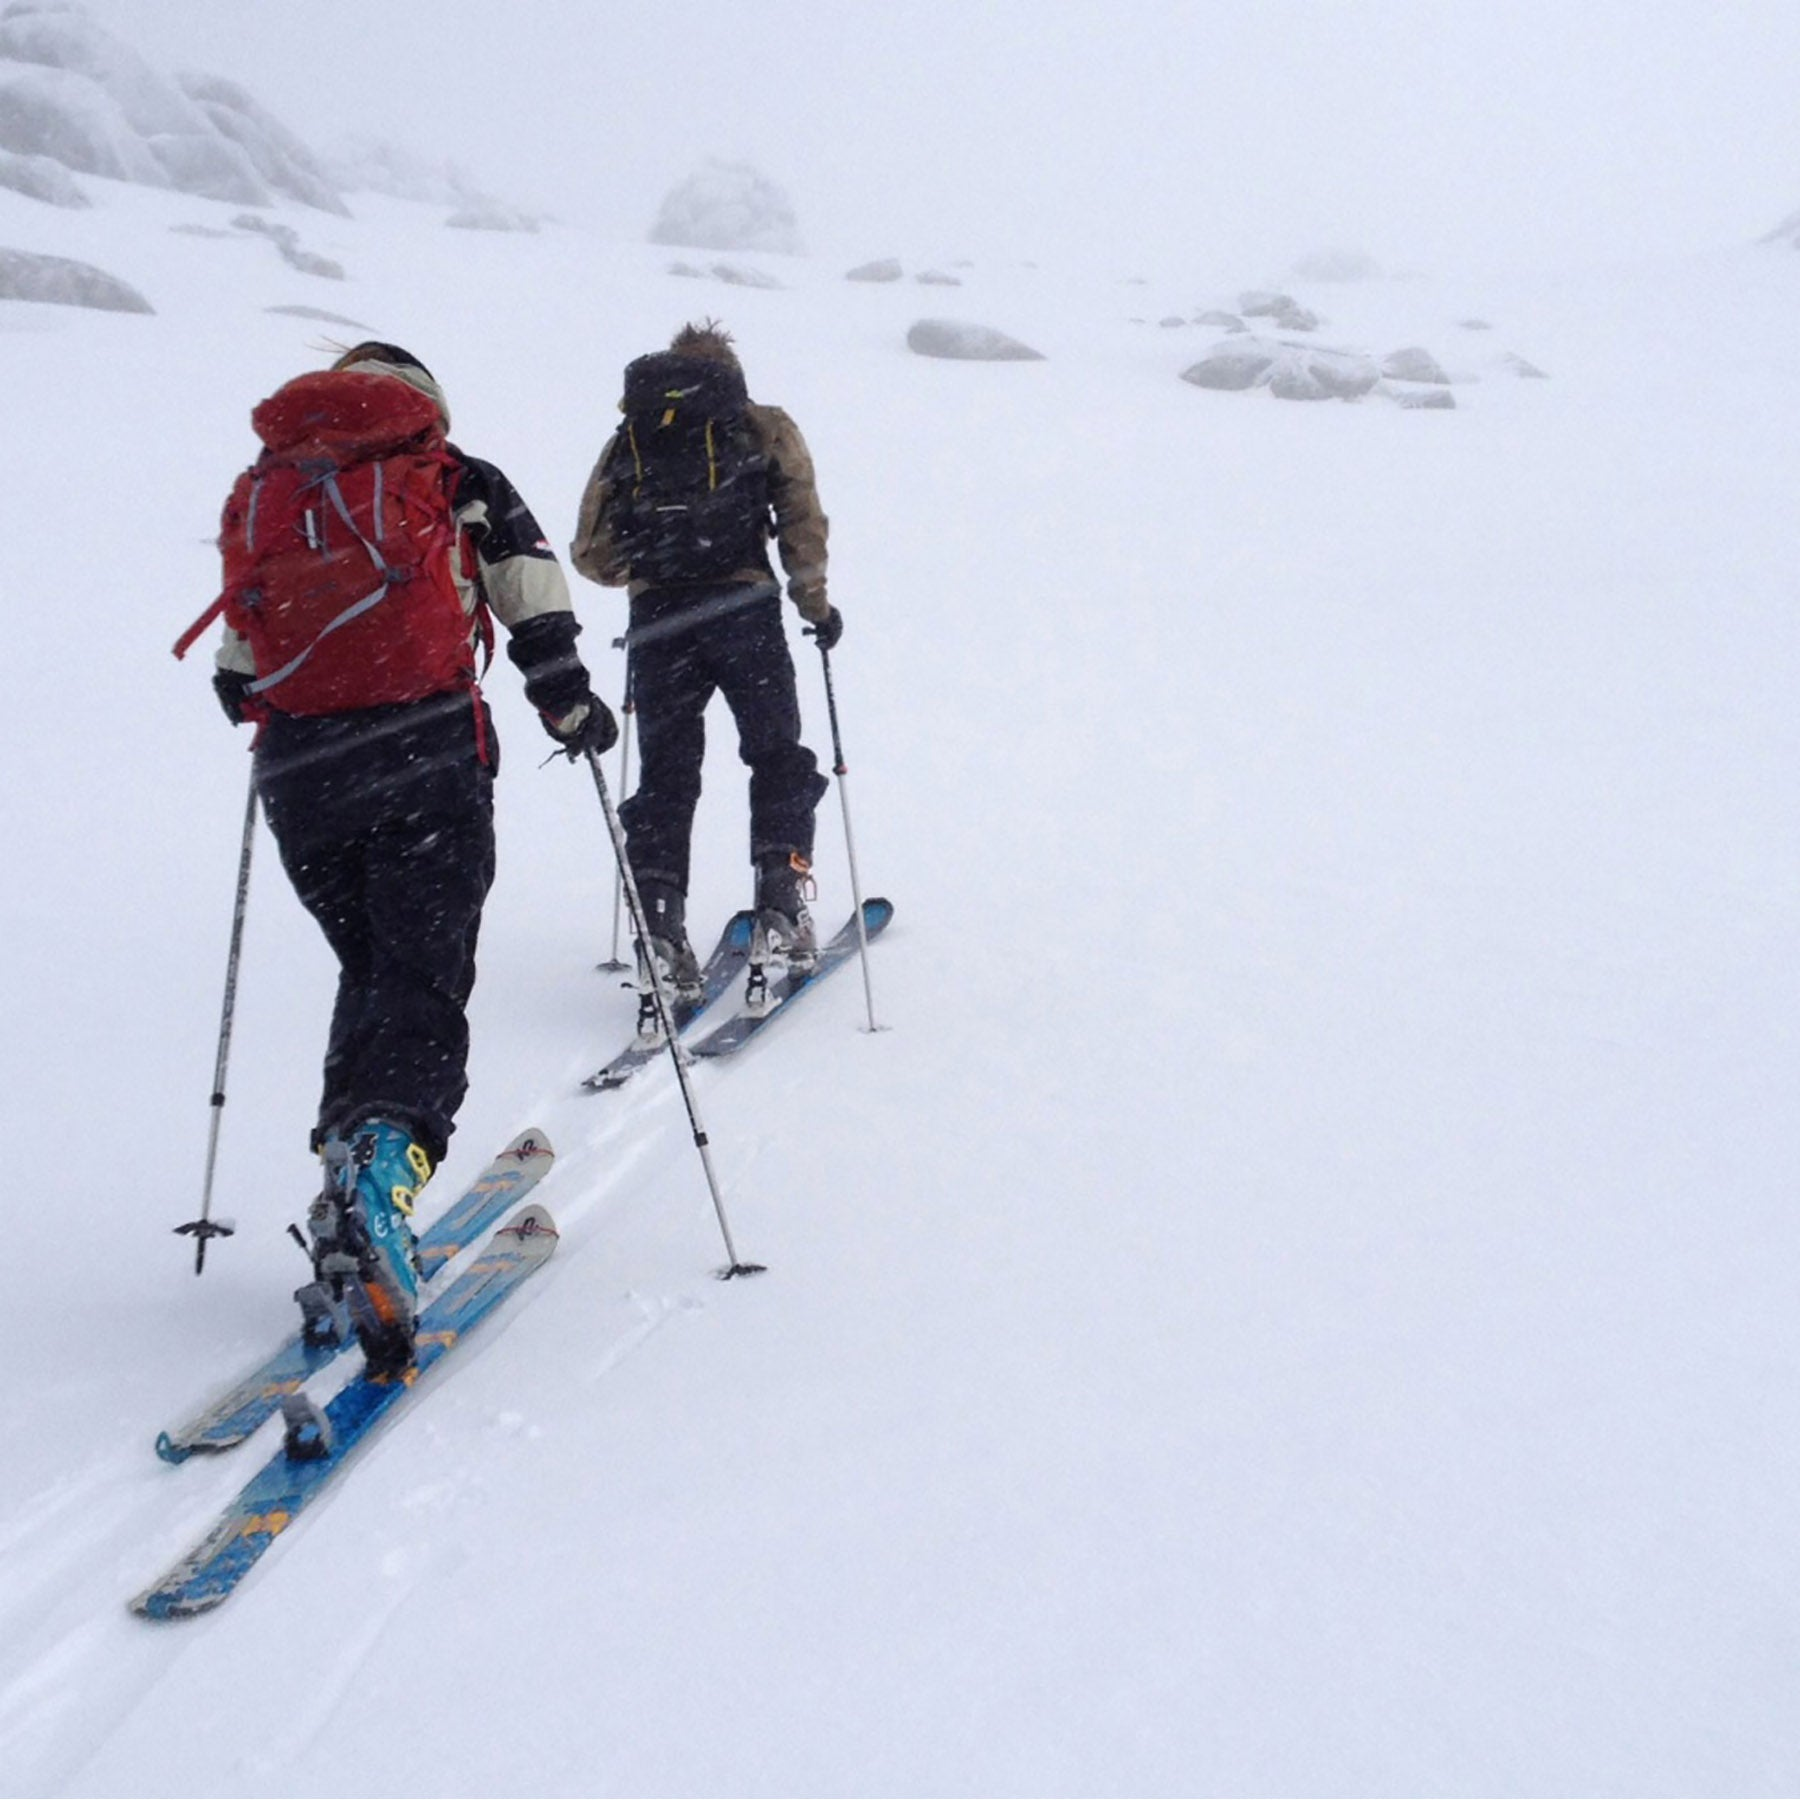 Mont staff members navigating in poor weather on the New South Wales Main Range.